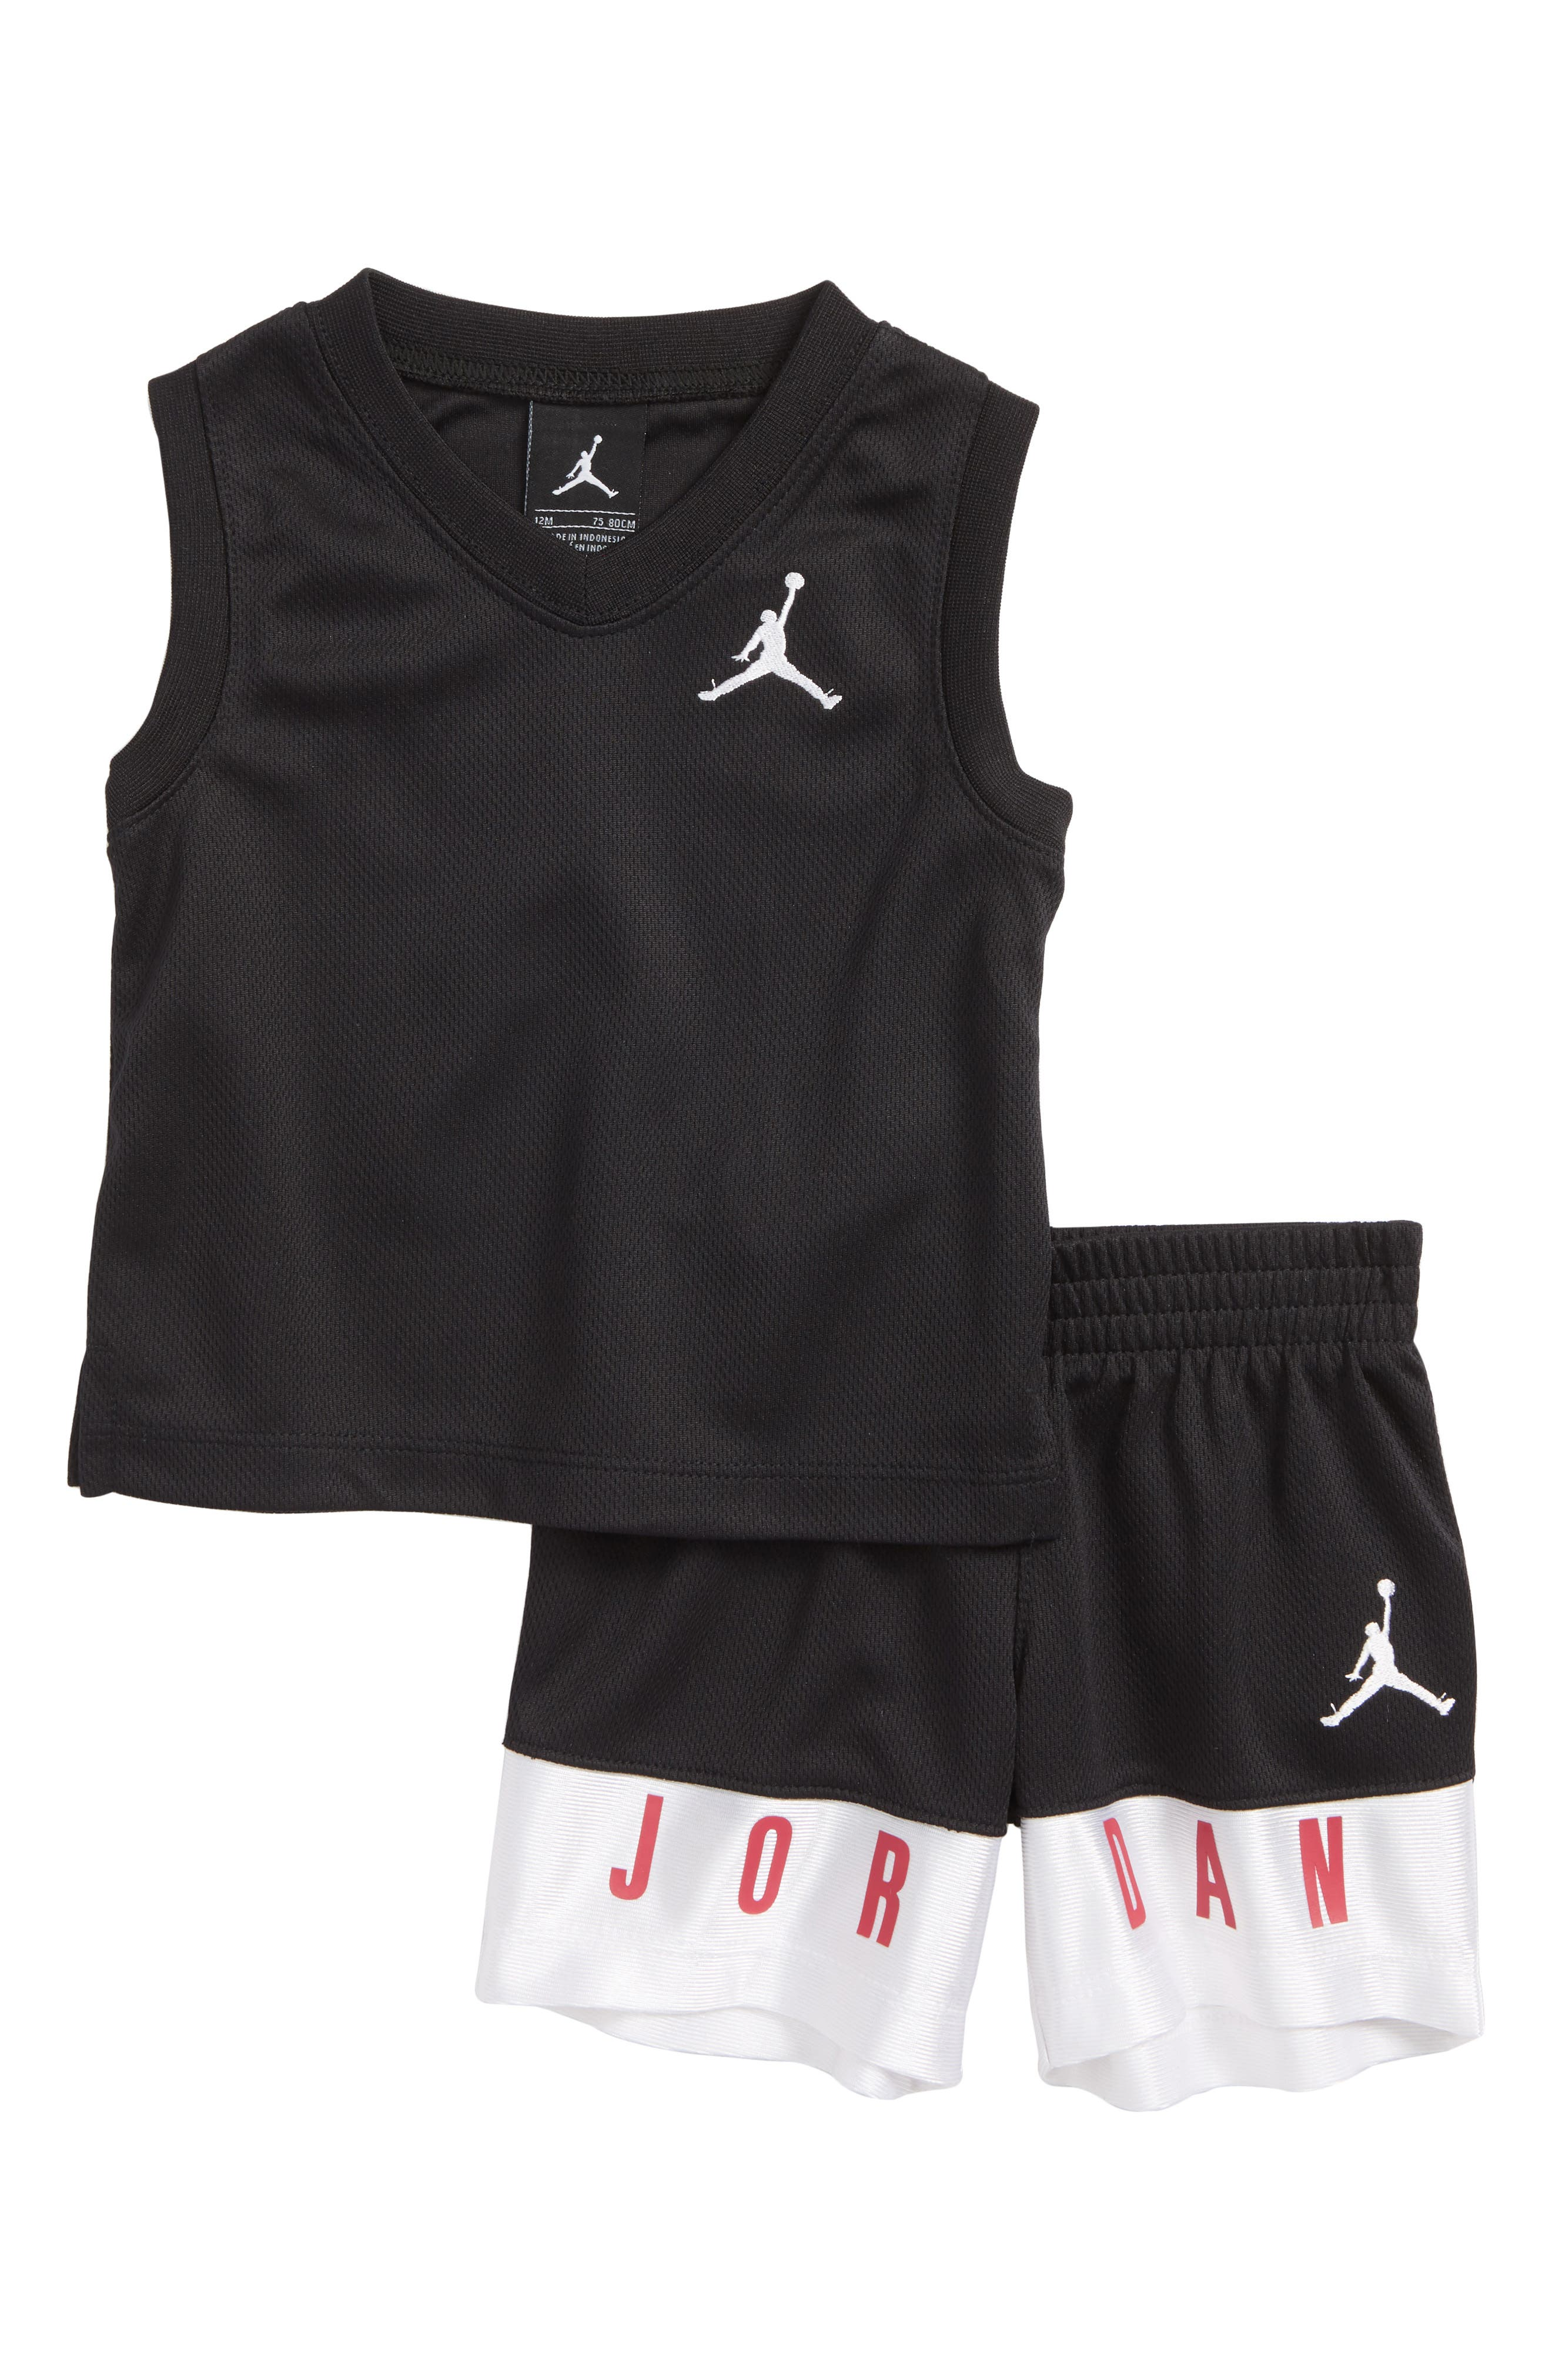 AJ23 Jersey Tank Top & Mesh Shorts Set,                             Main thumbnail 1, color,                             Black